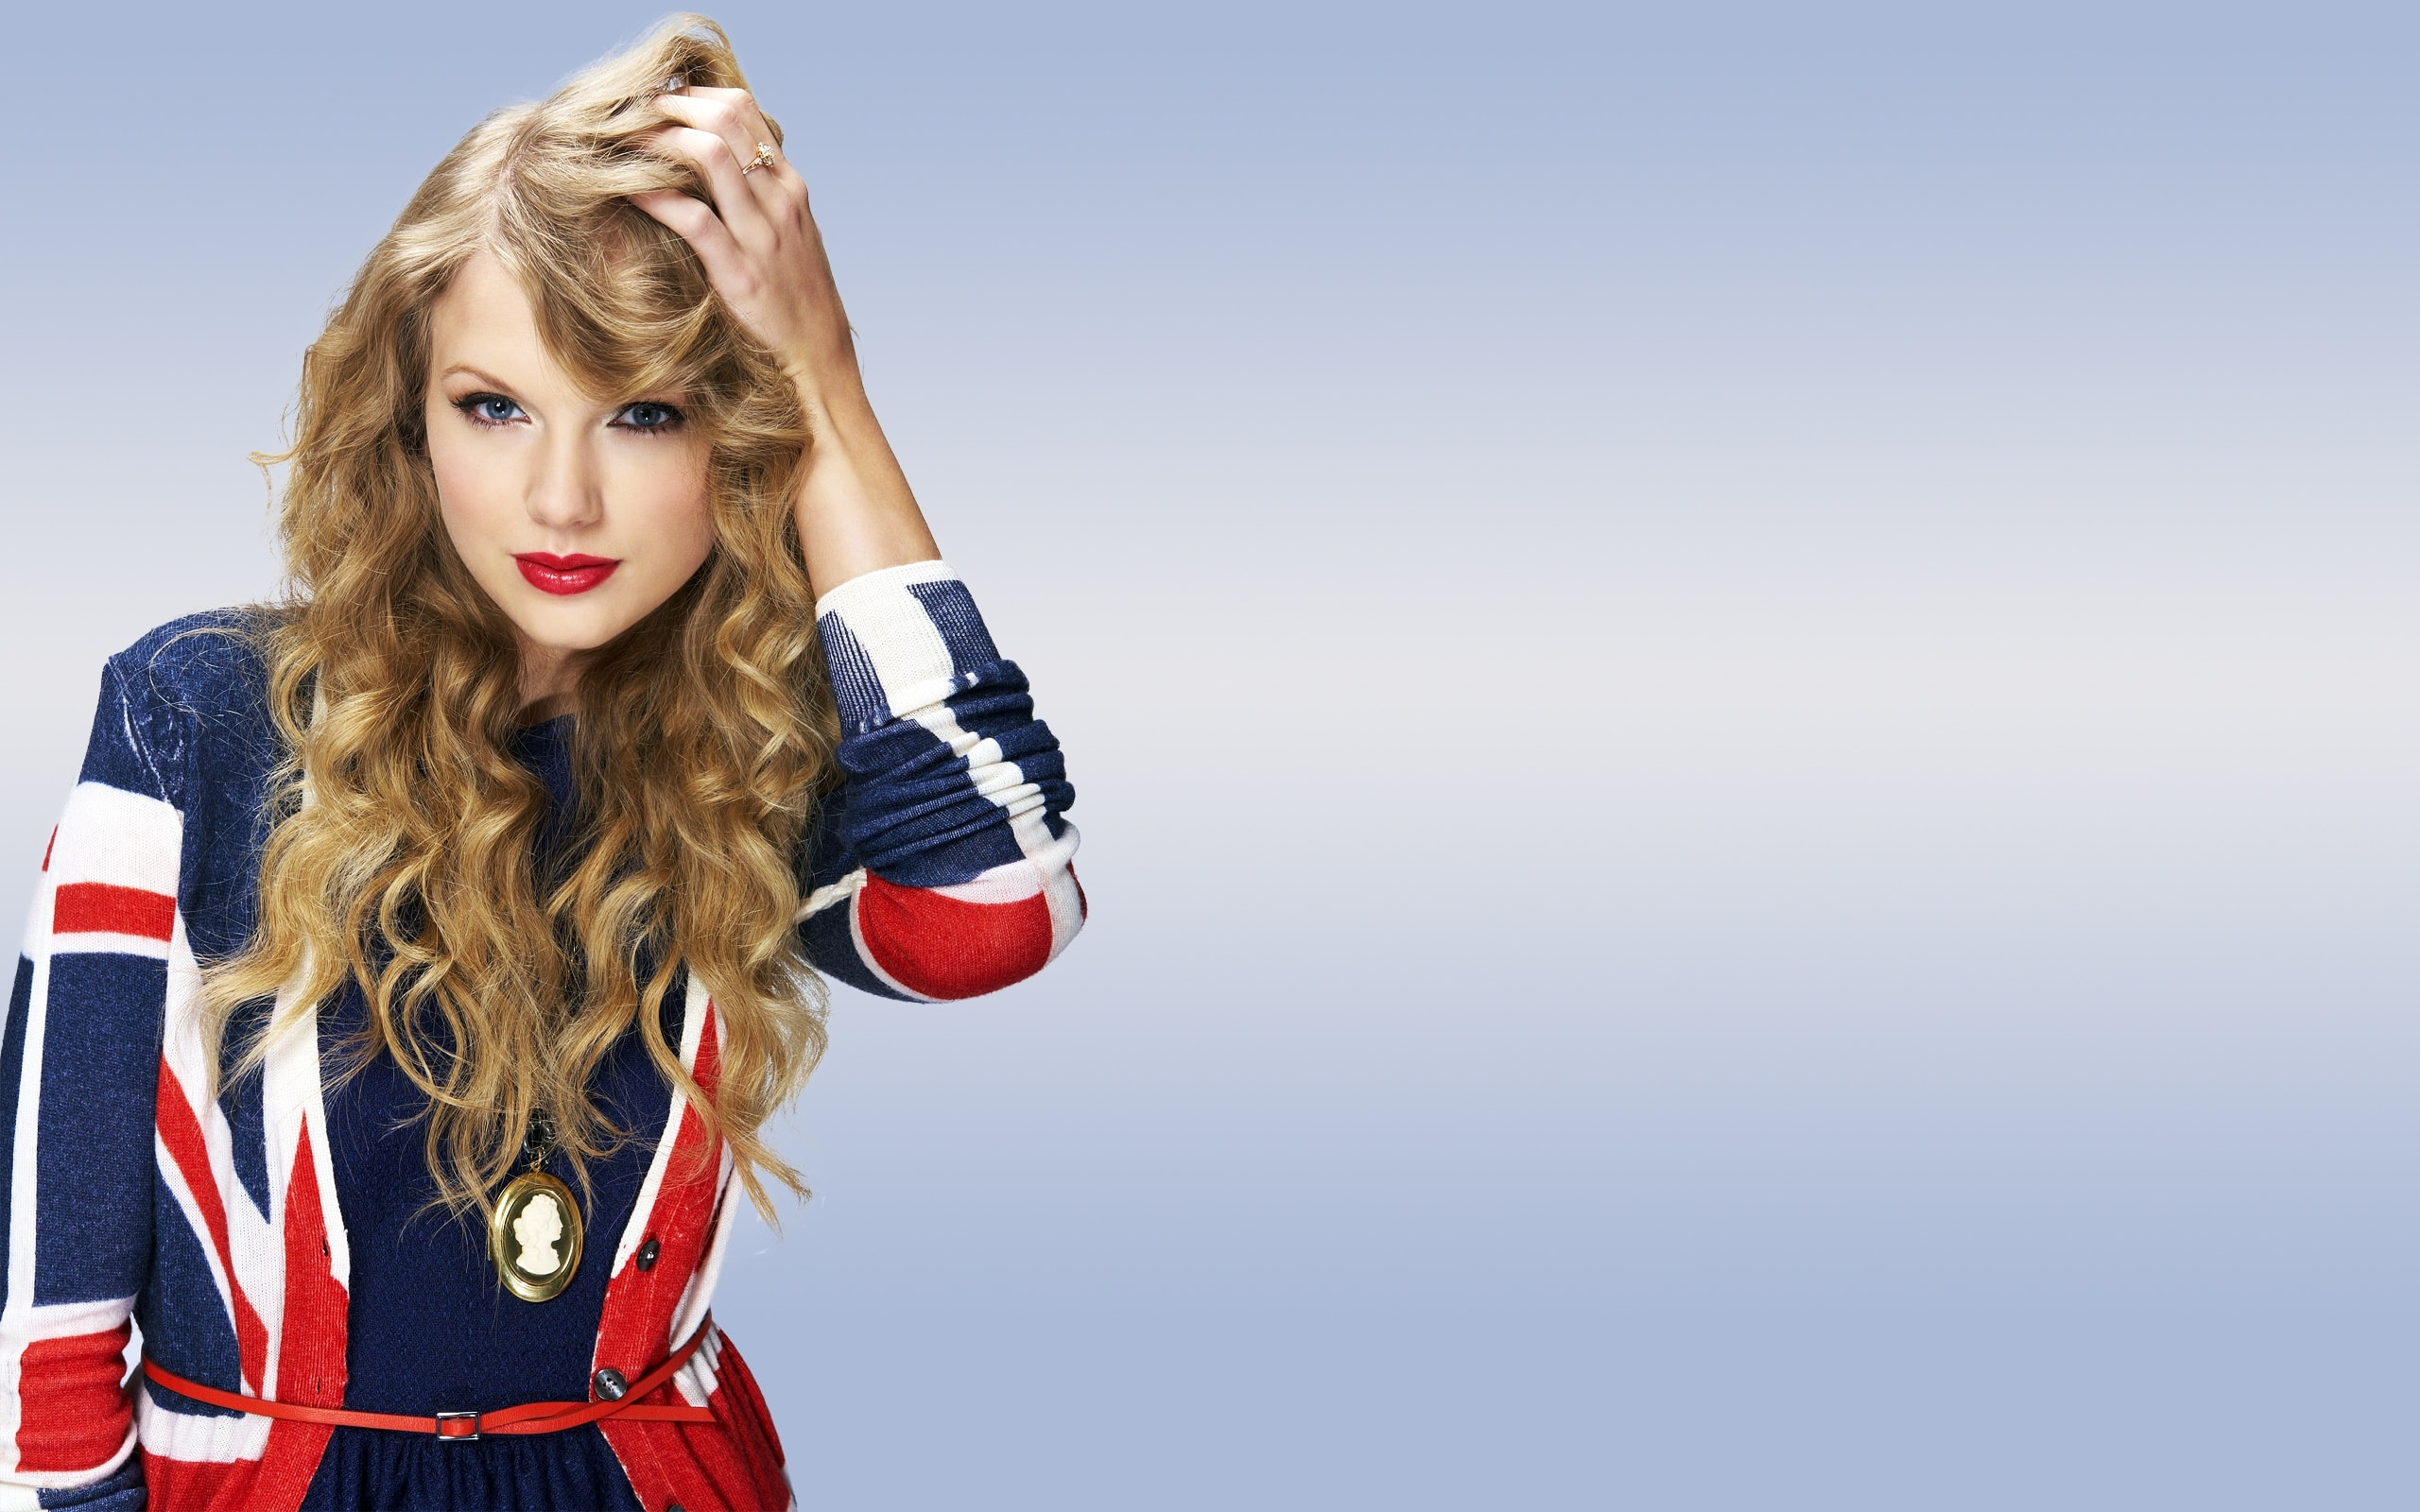 taylor swift hd desktop wallpapers | 7wallpapers